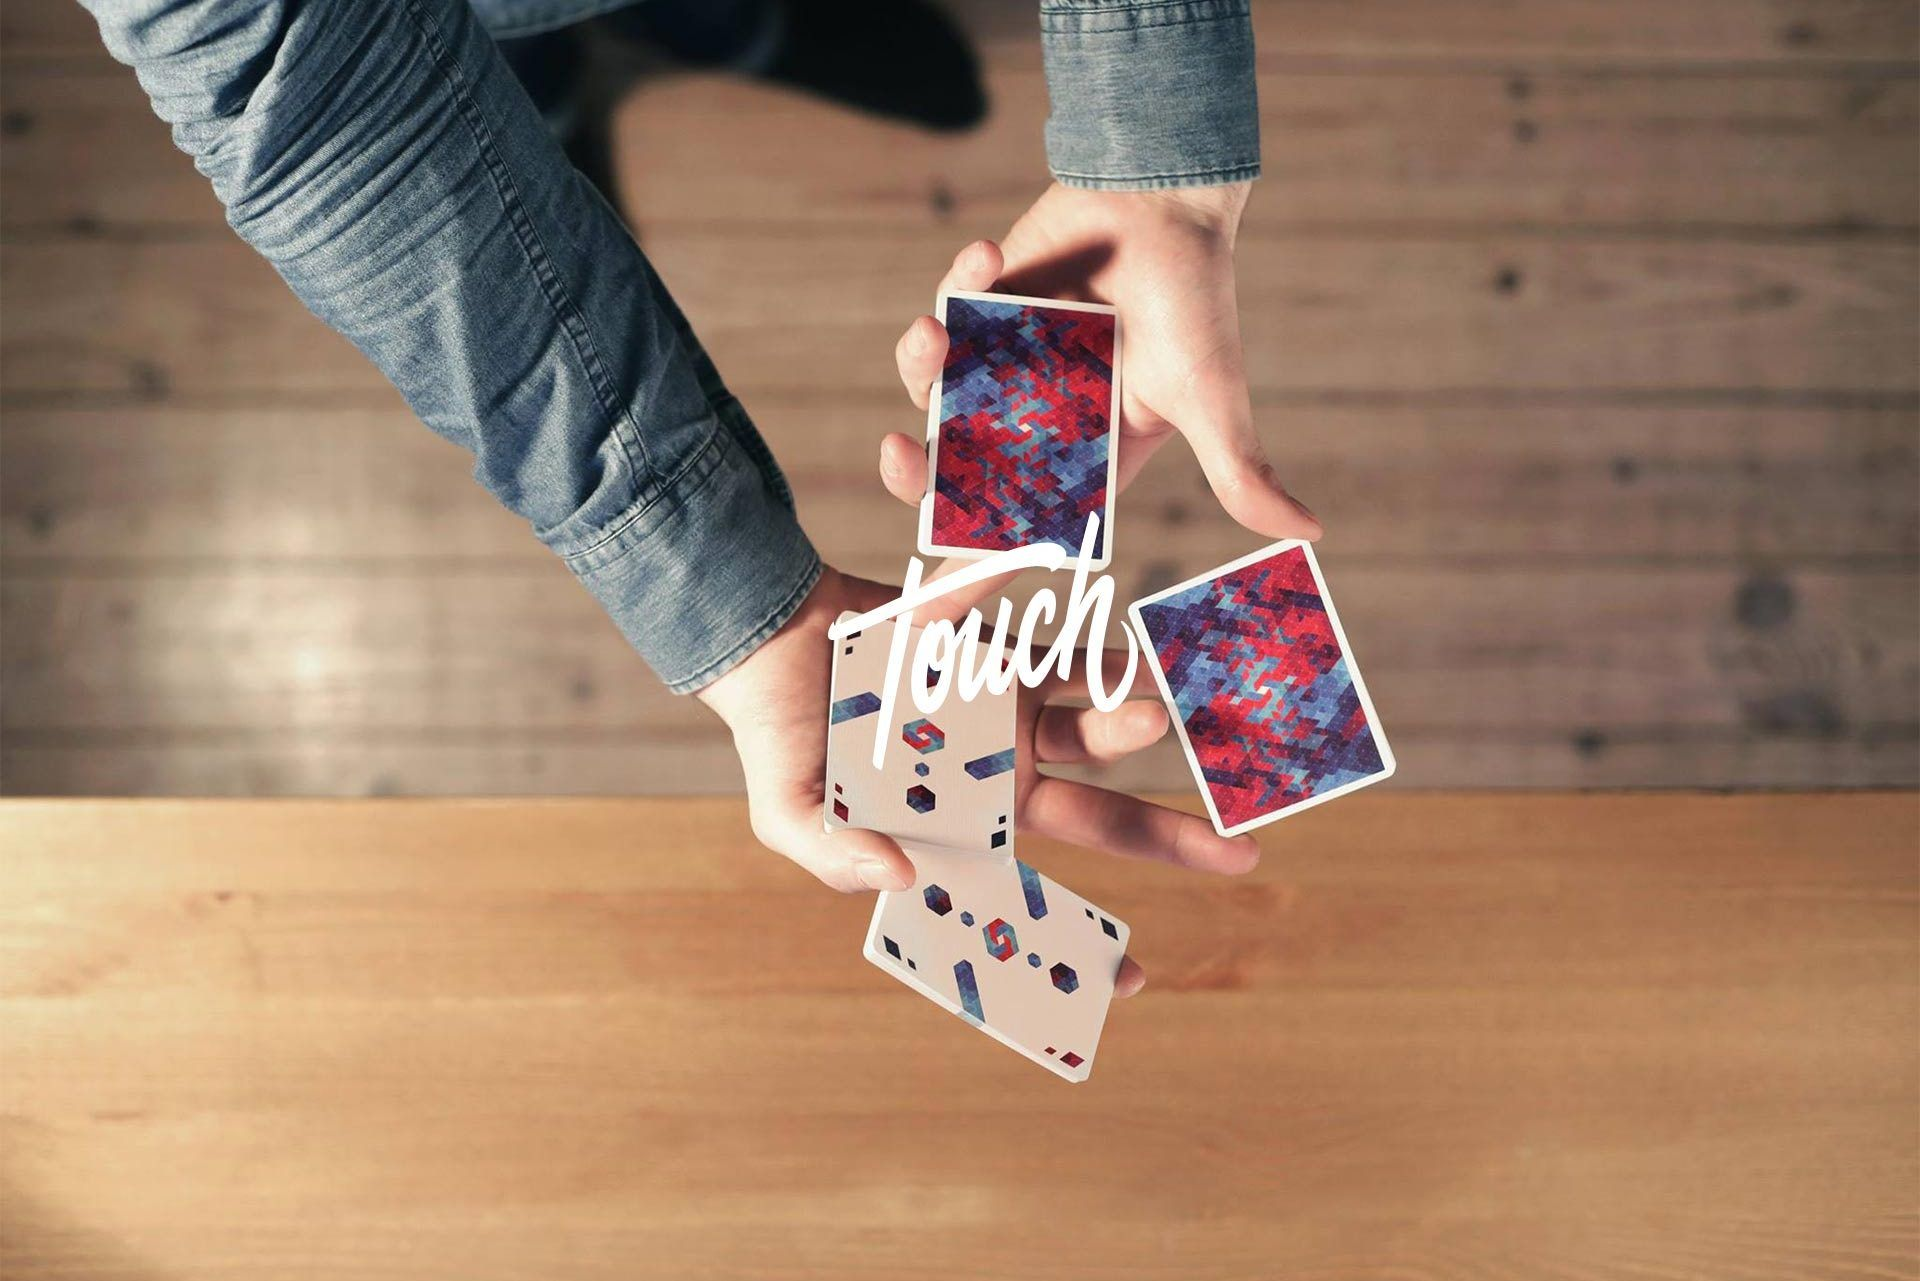 Cardistry touch cardistry playing cards cardistry card